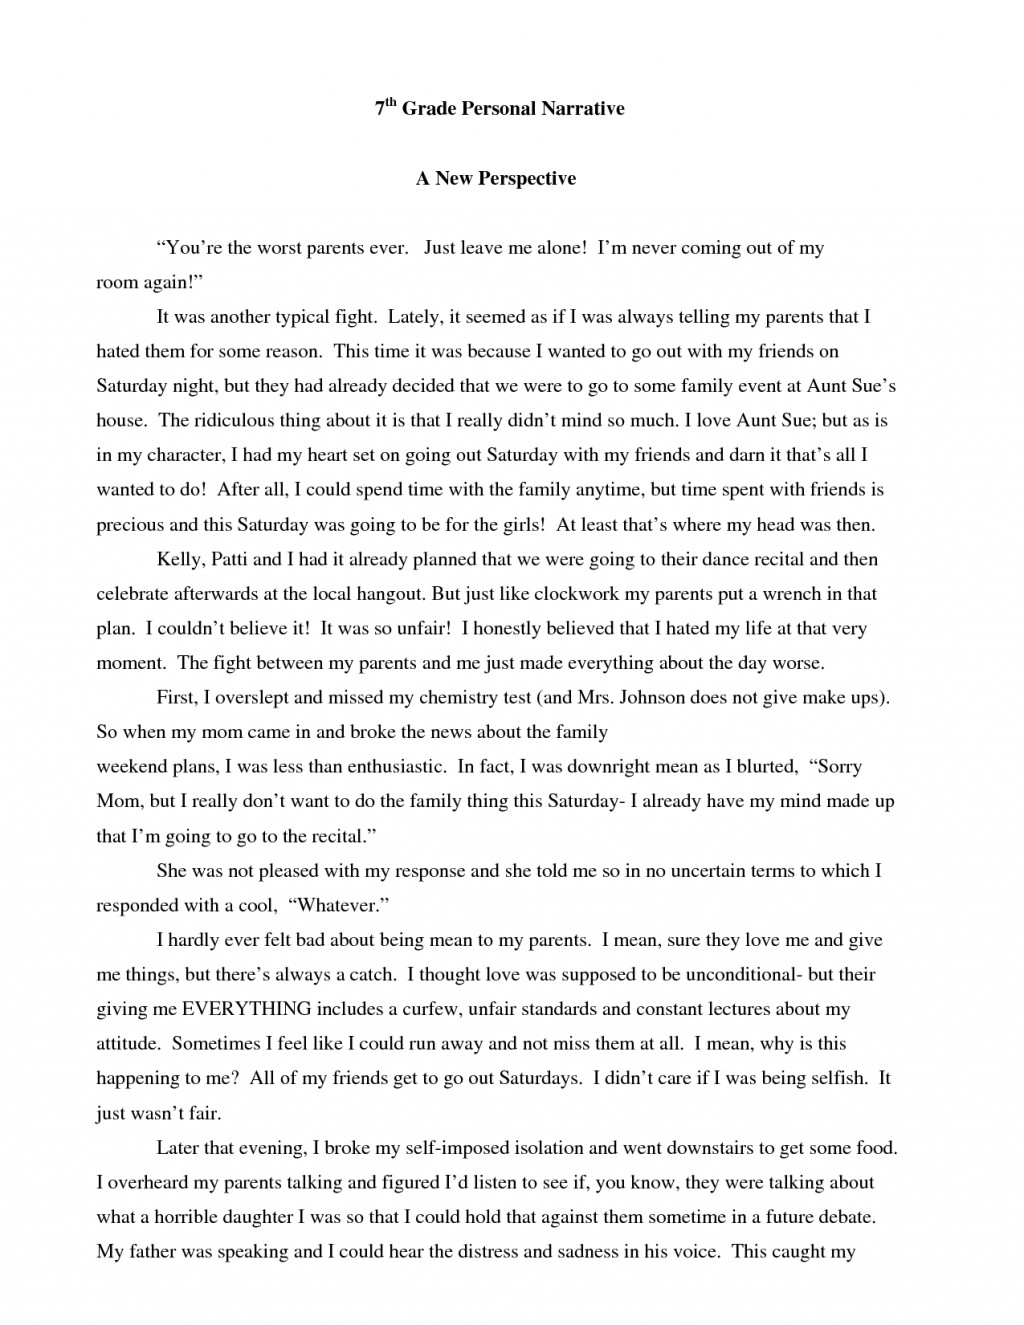 014 Narrative Essay Sample Of Personal Experience Essays L Dreaded Spm 2011 About Love Interesting Samples Large